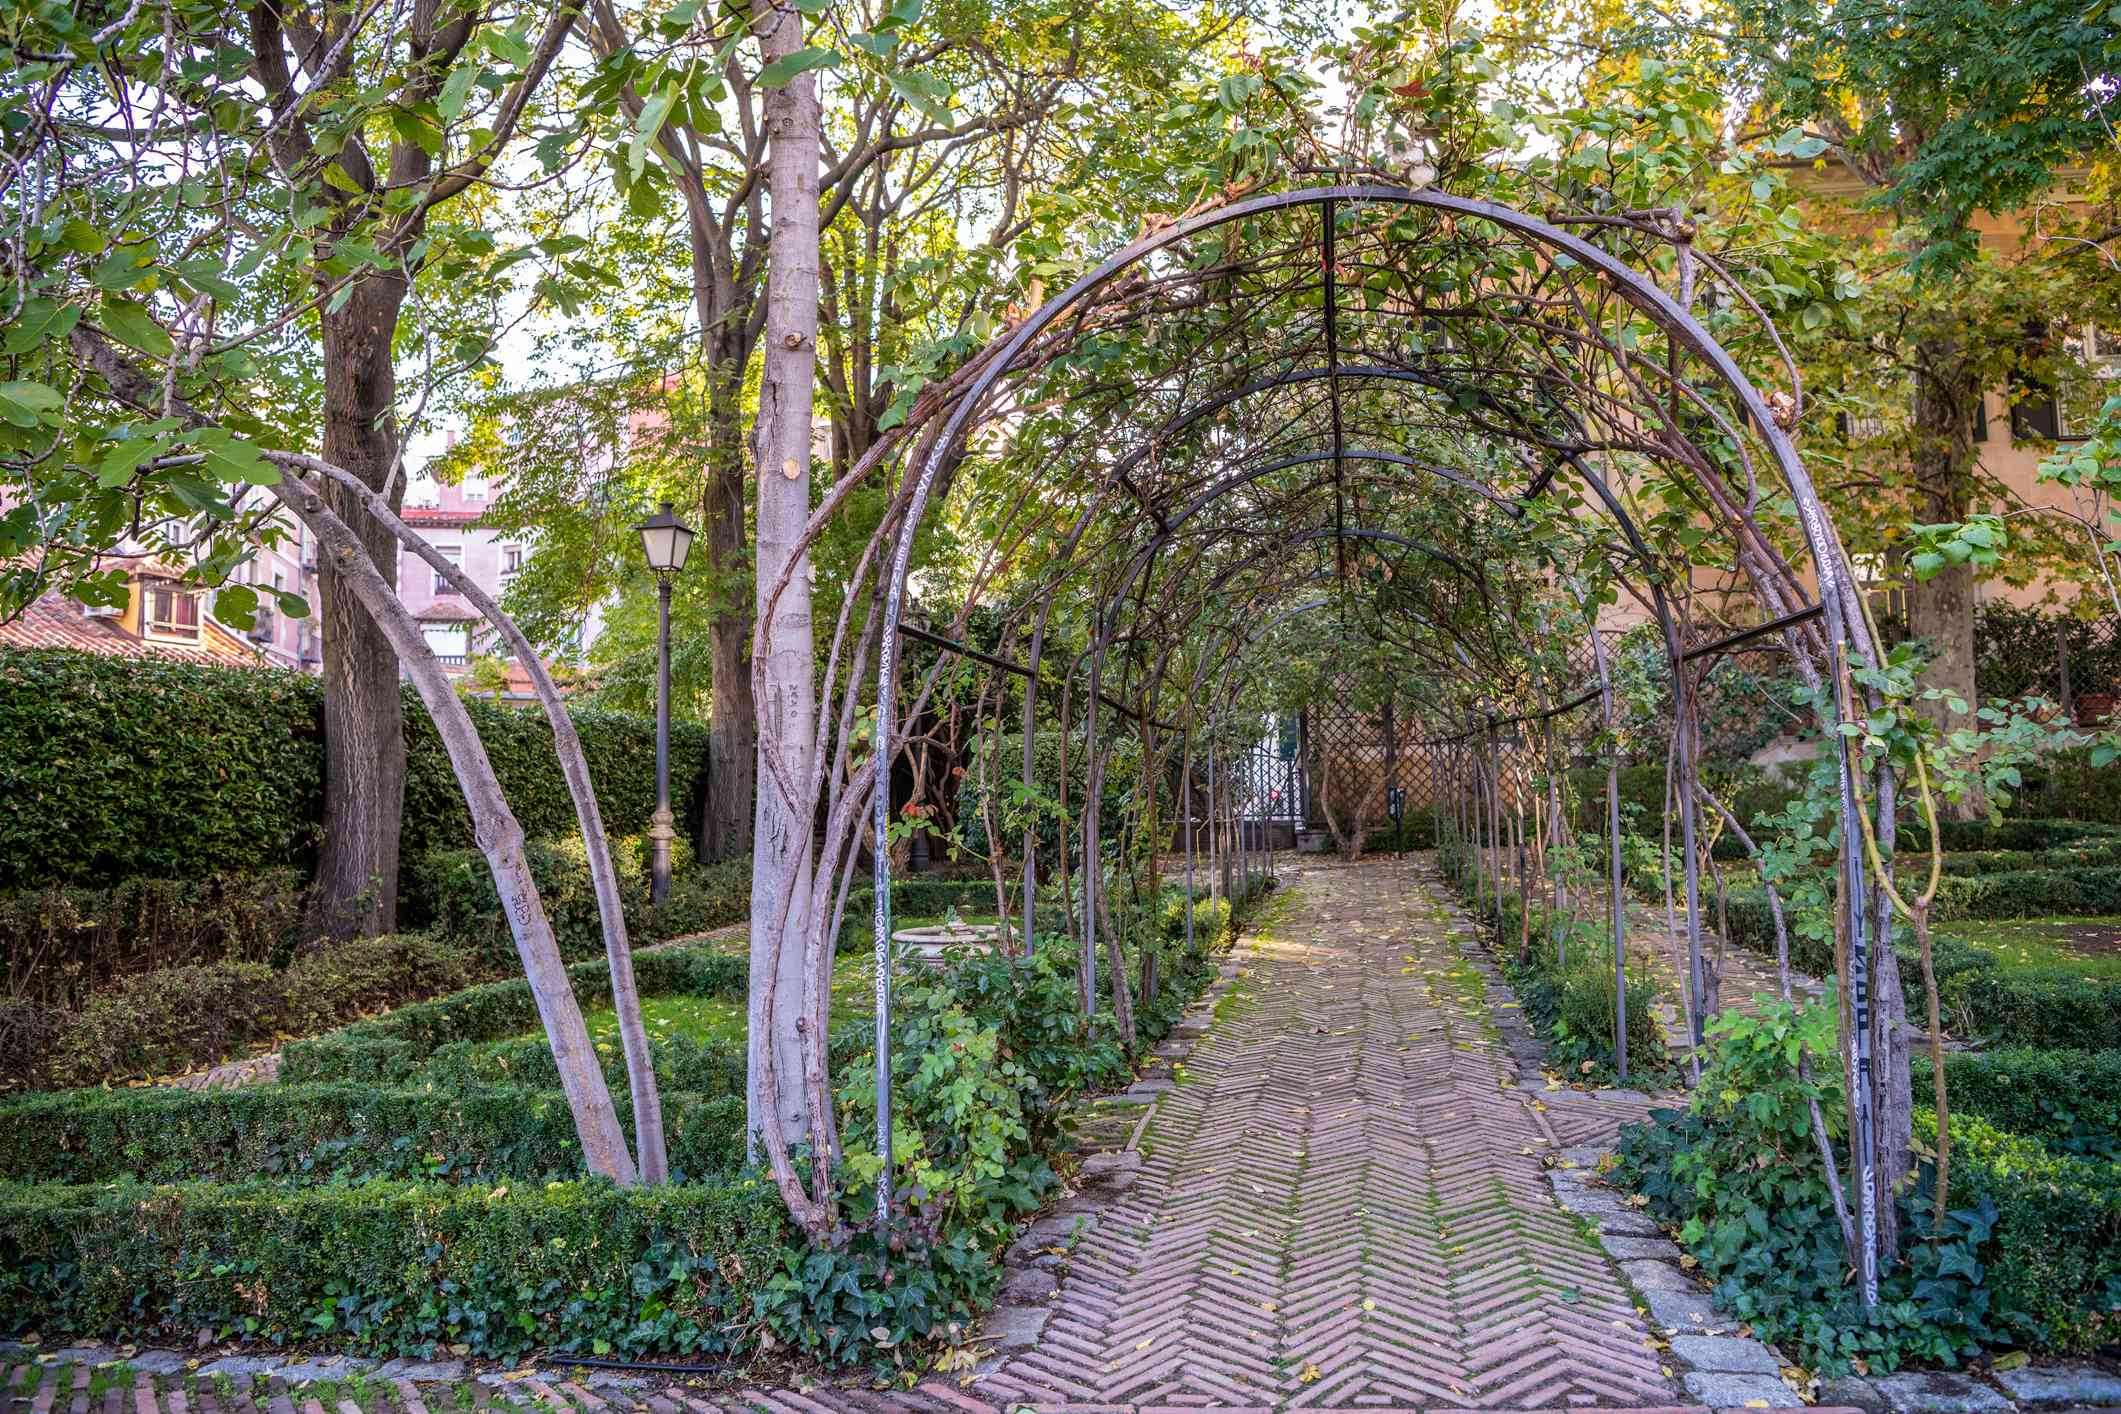 natural archway over a brick path surrounded by tall trees and low, green hedges in the Garden of the Prince of Angola